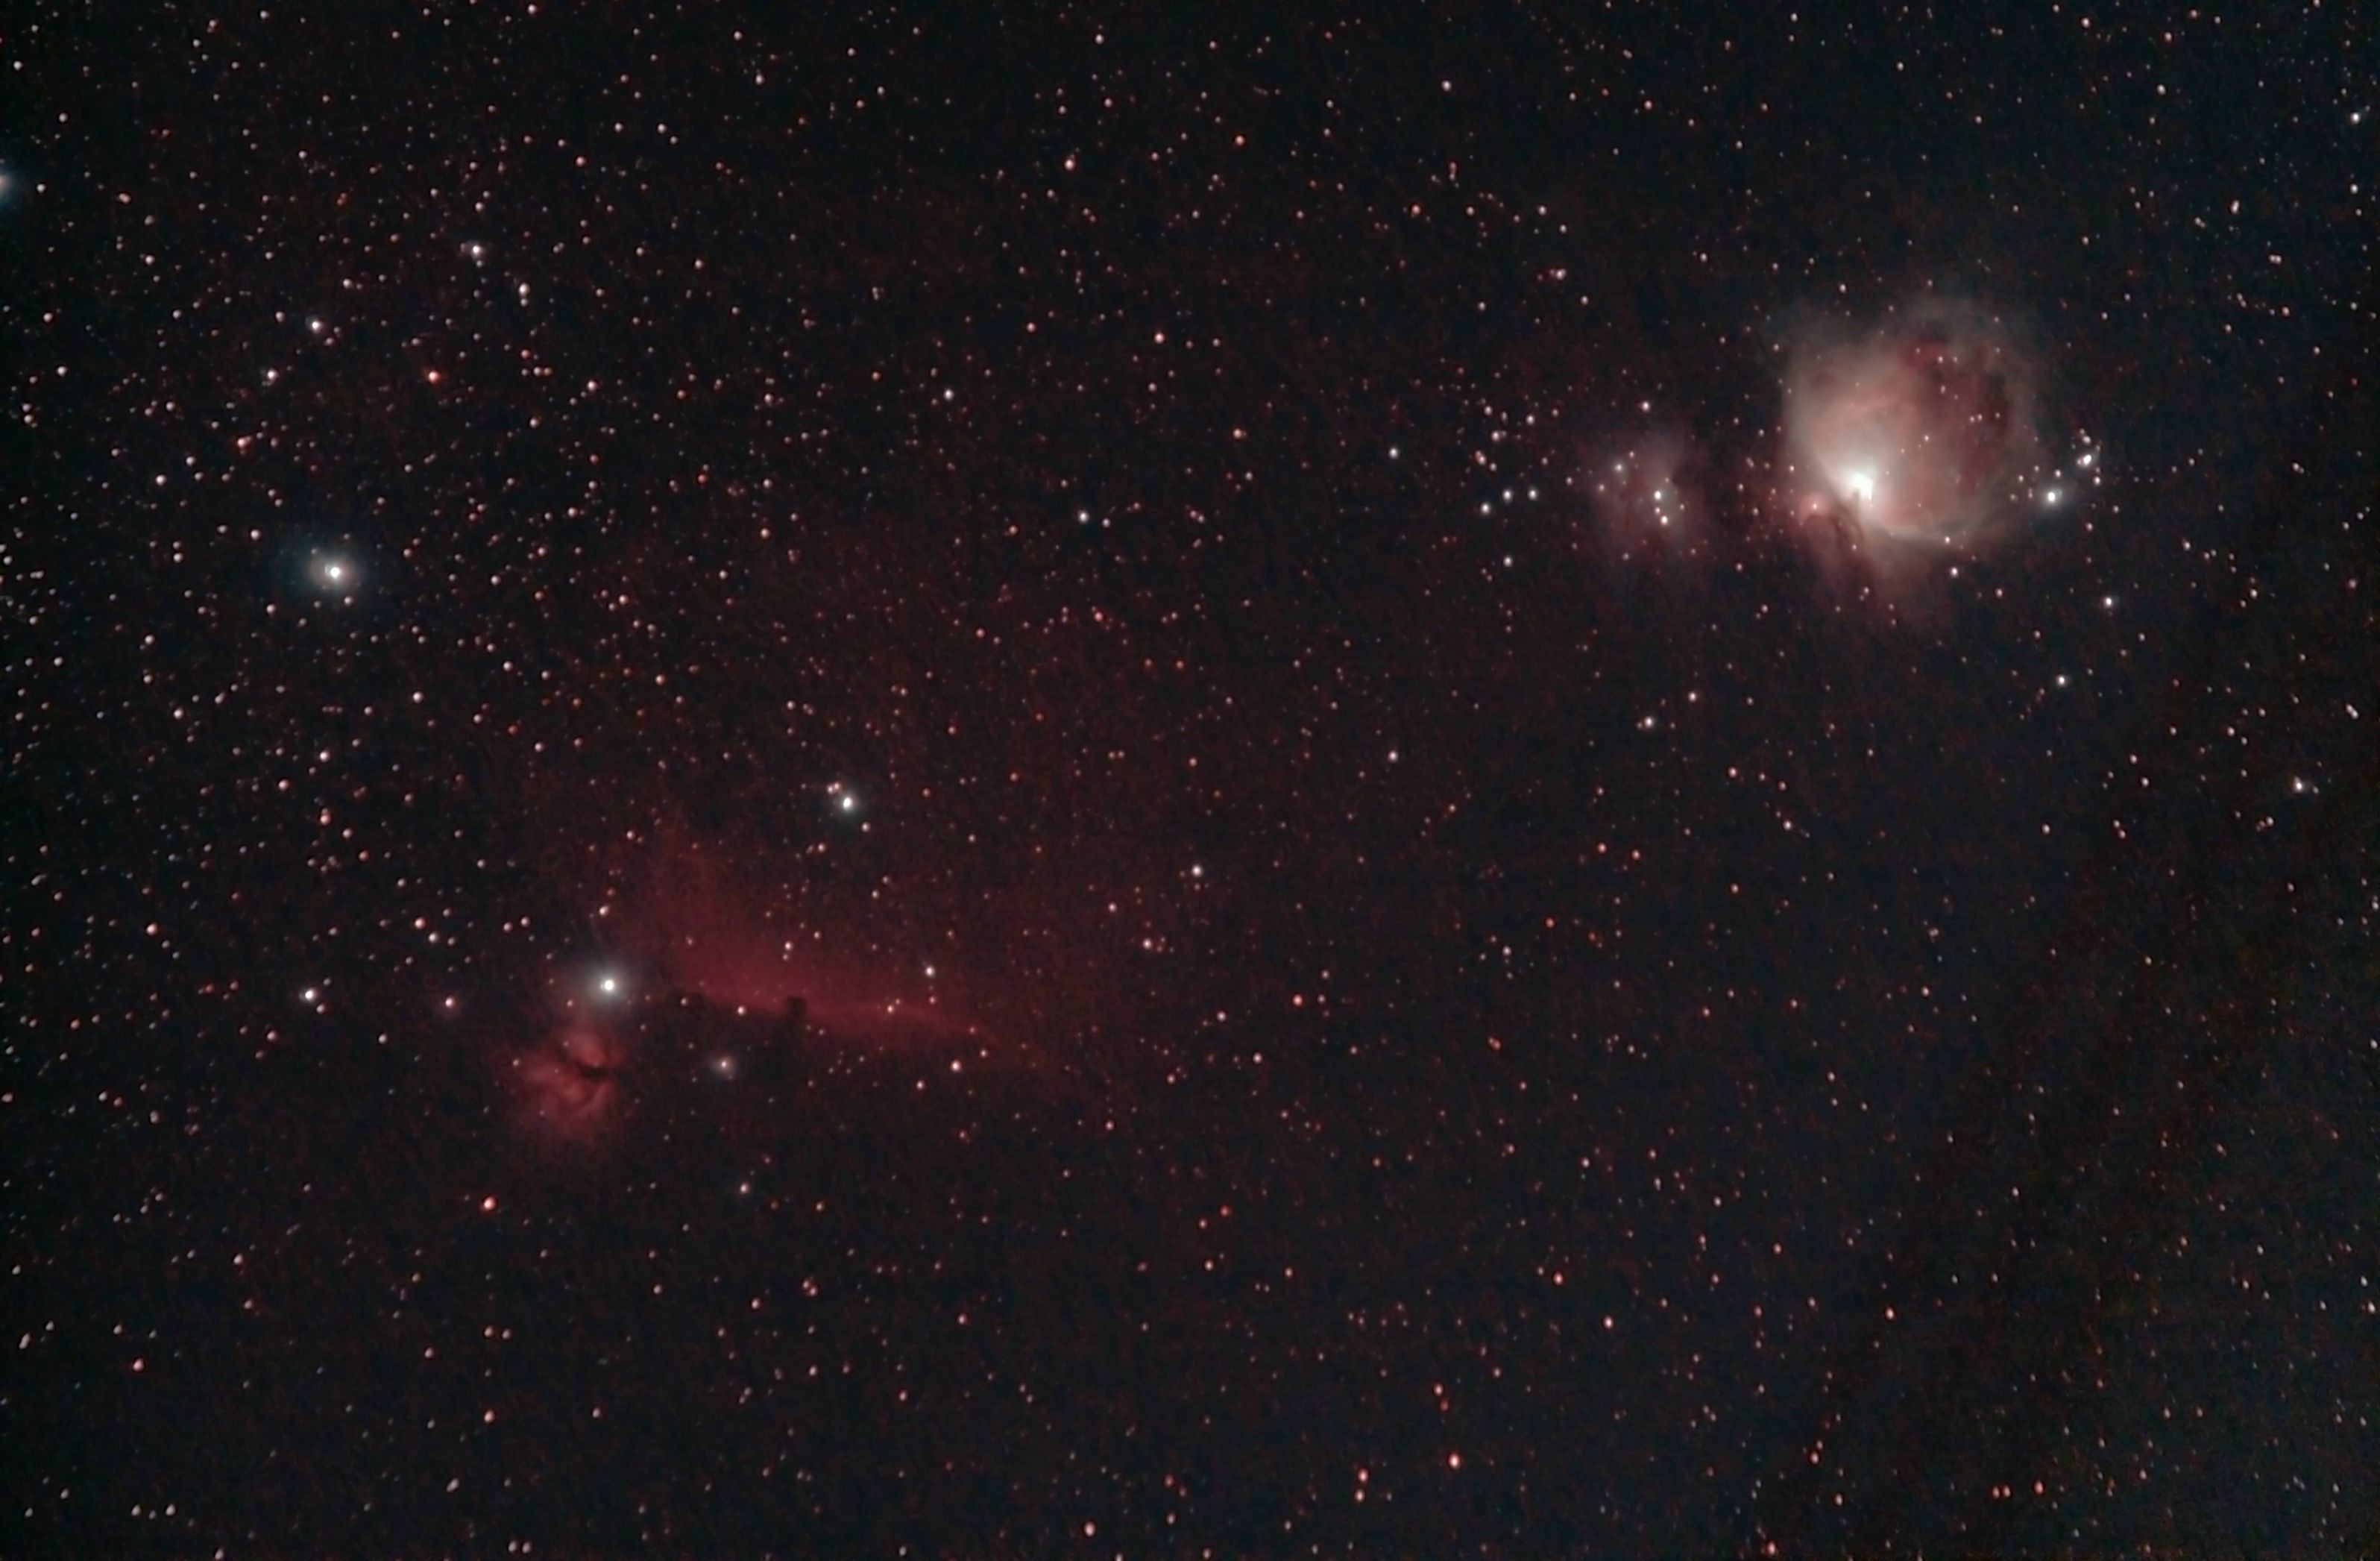 The faint redish stuff connects the horsehead, flame and orion nebula.